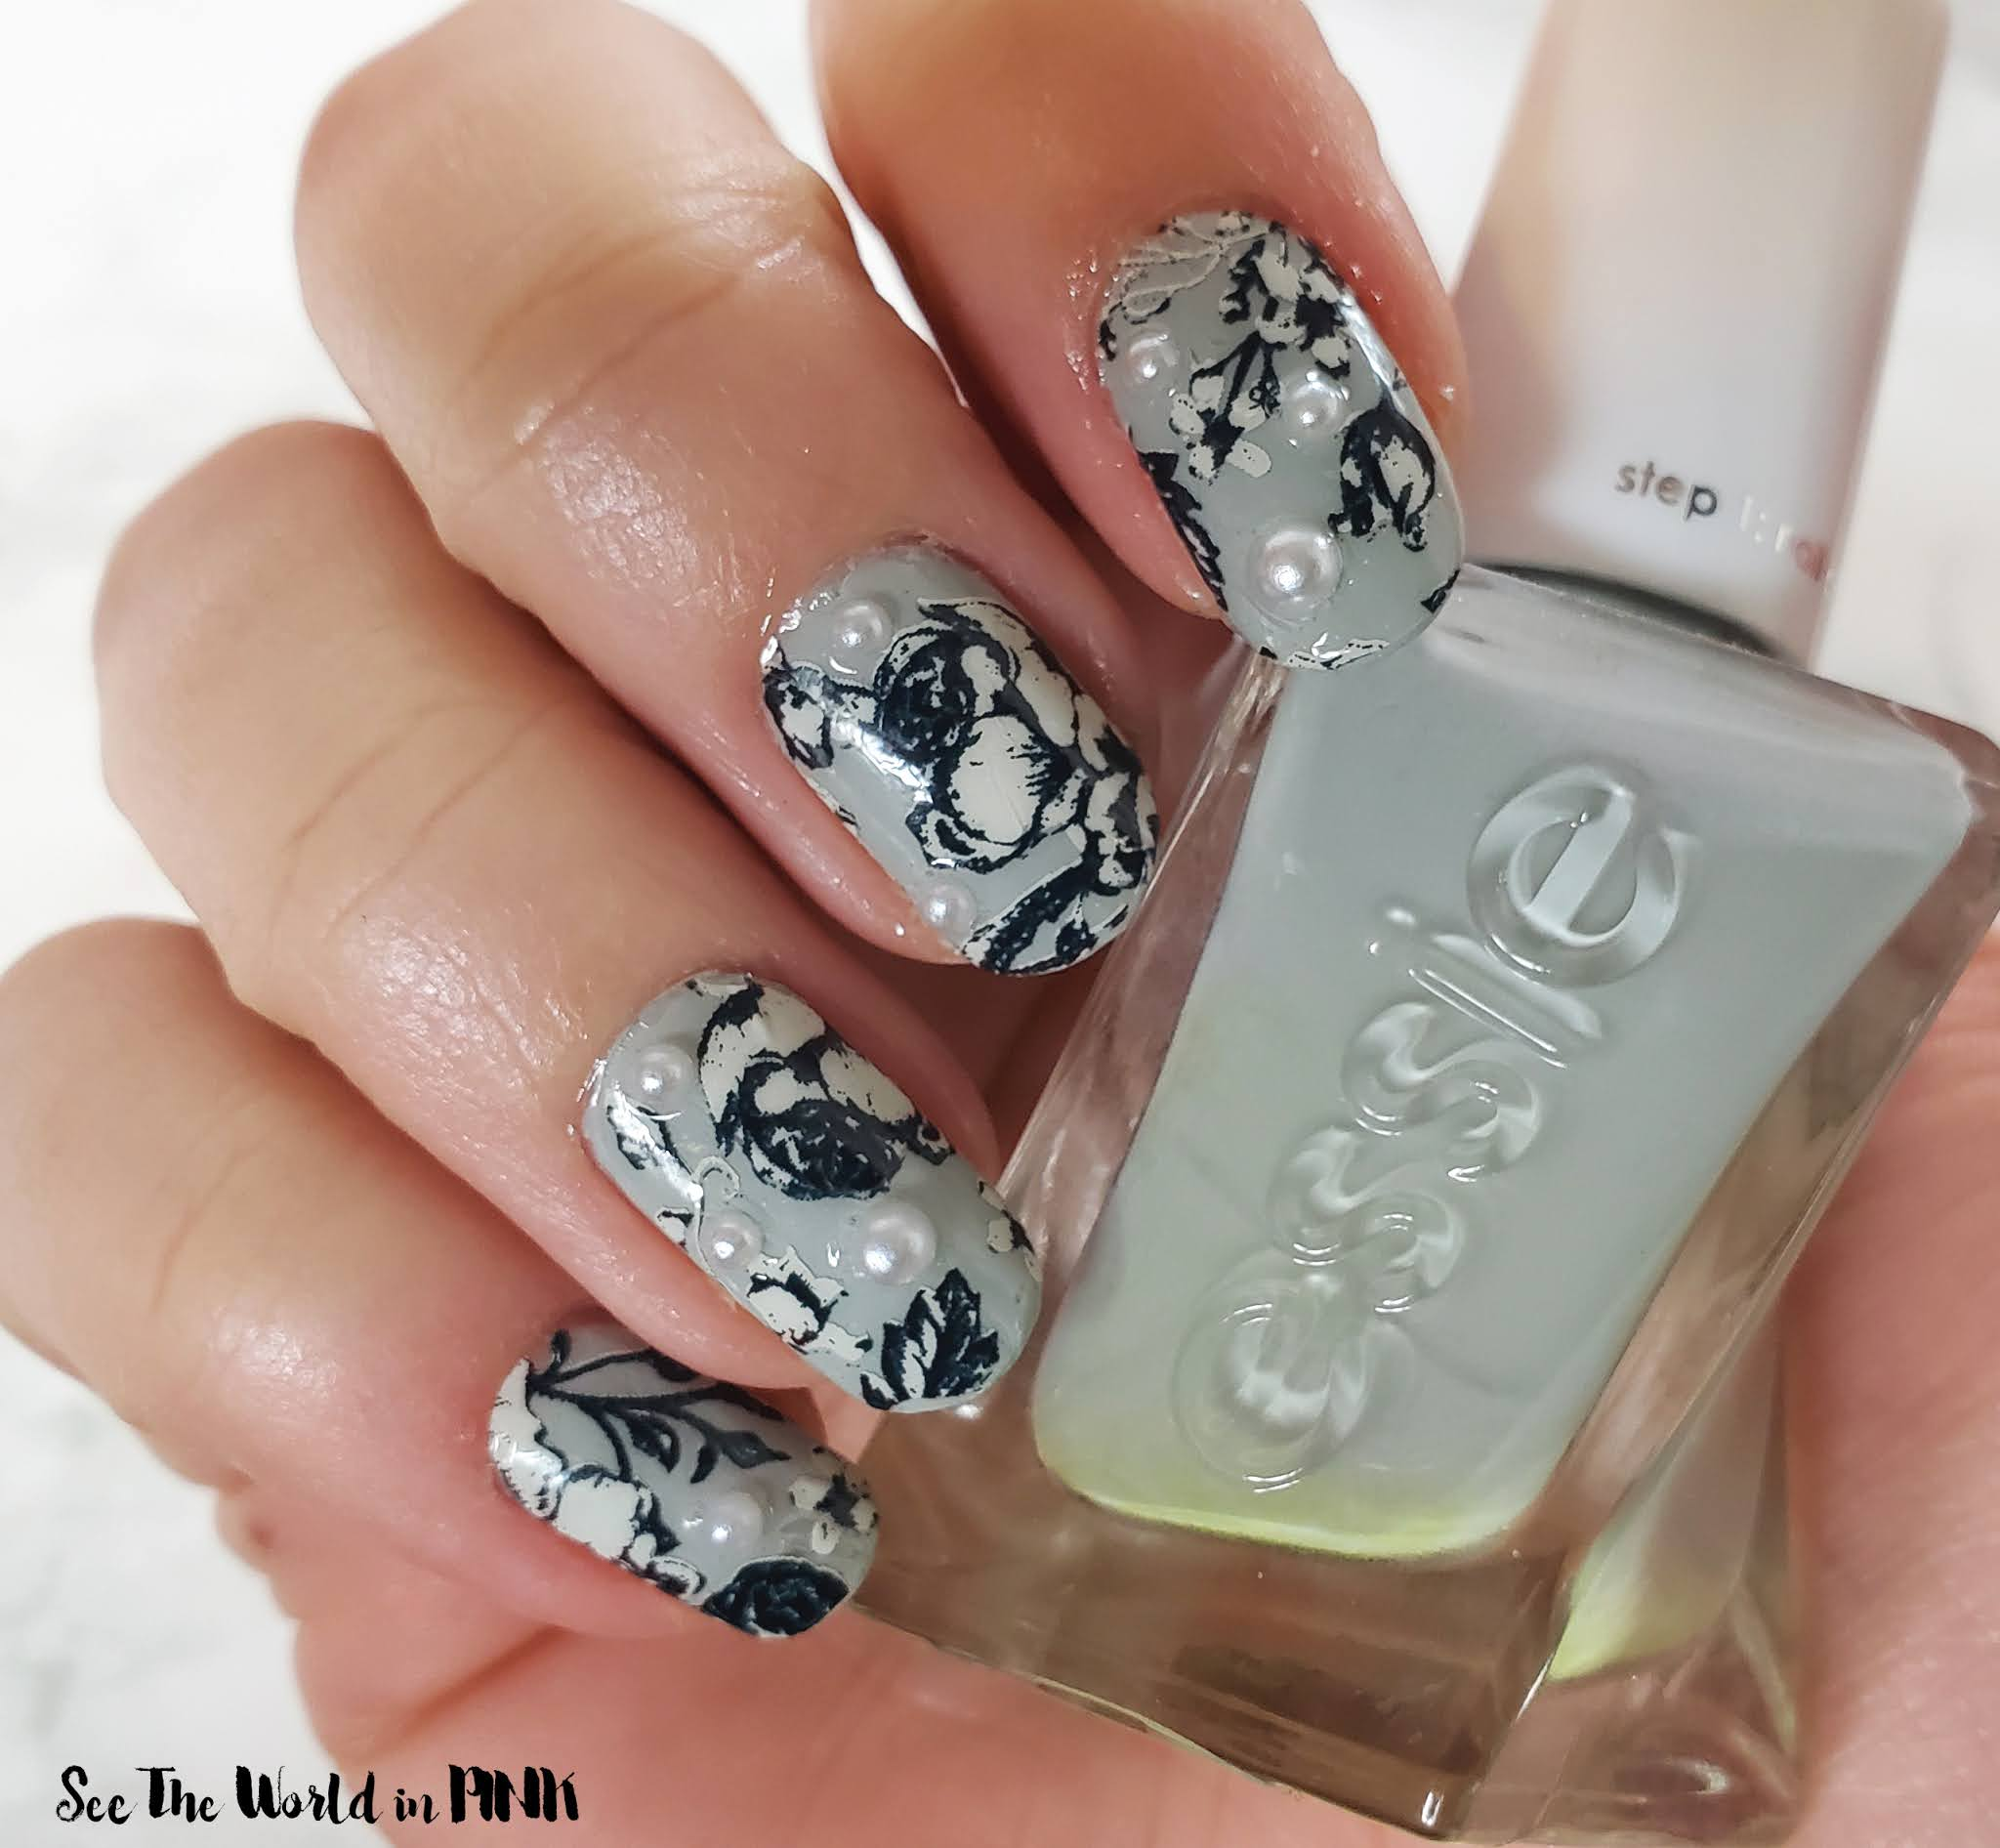 Manicure Monday - Winter Floral Nails